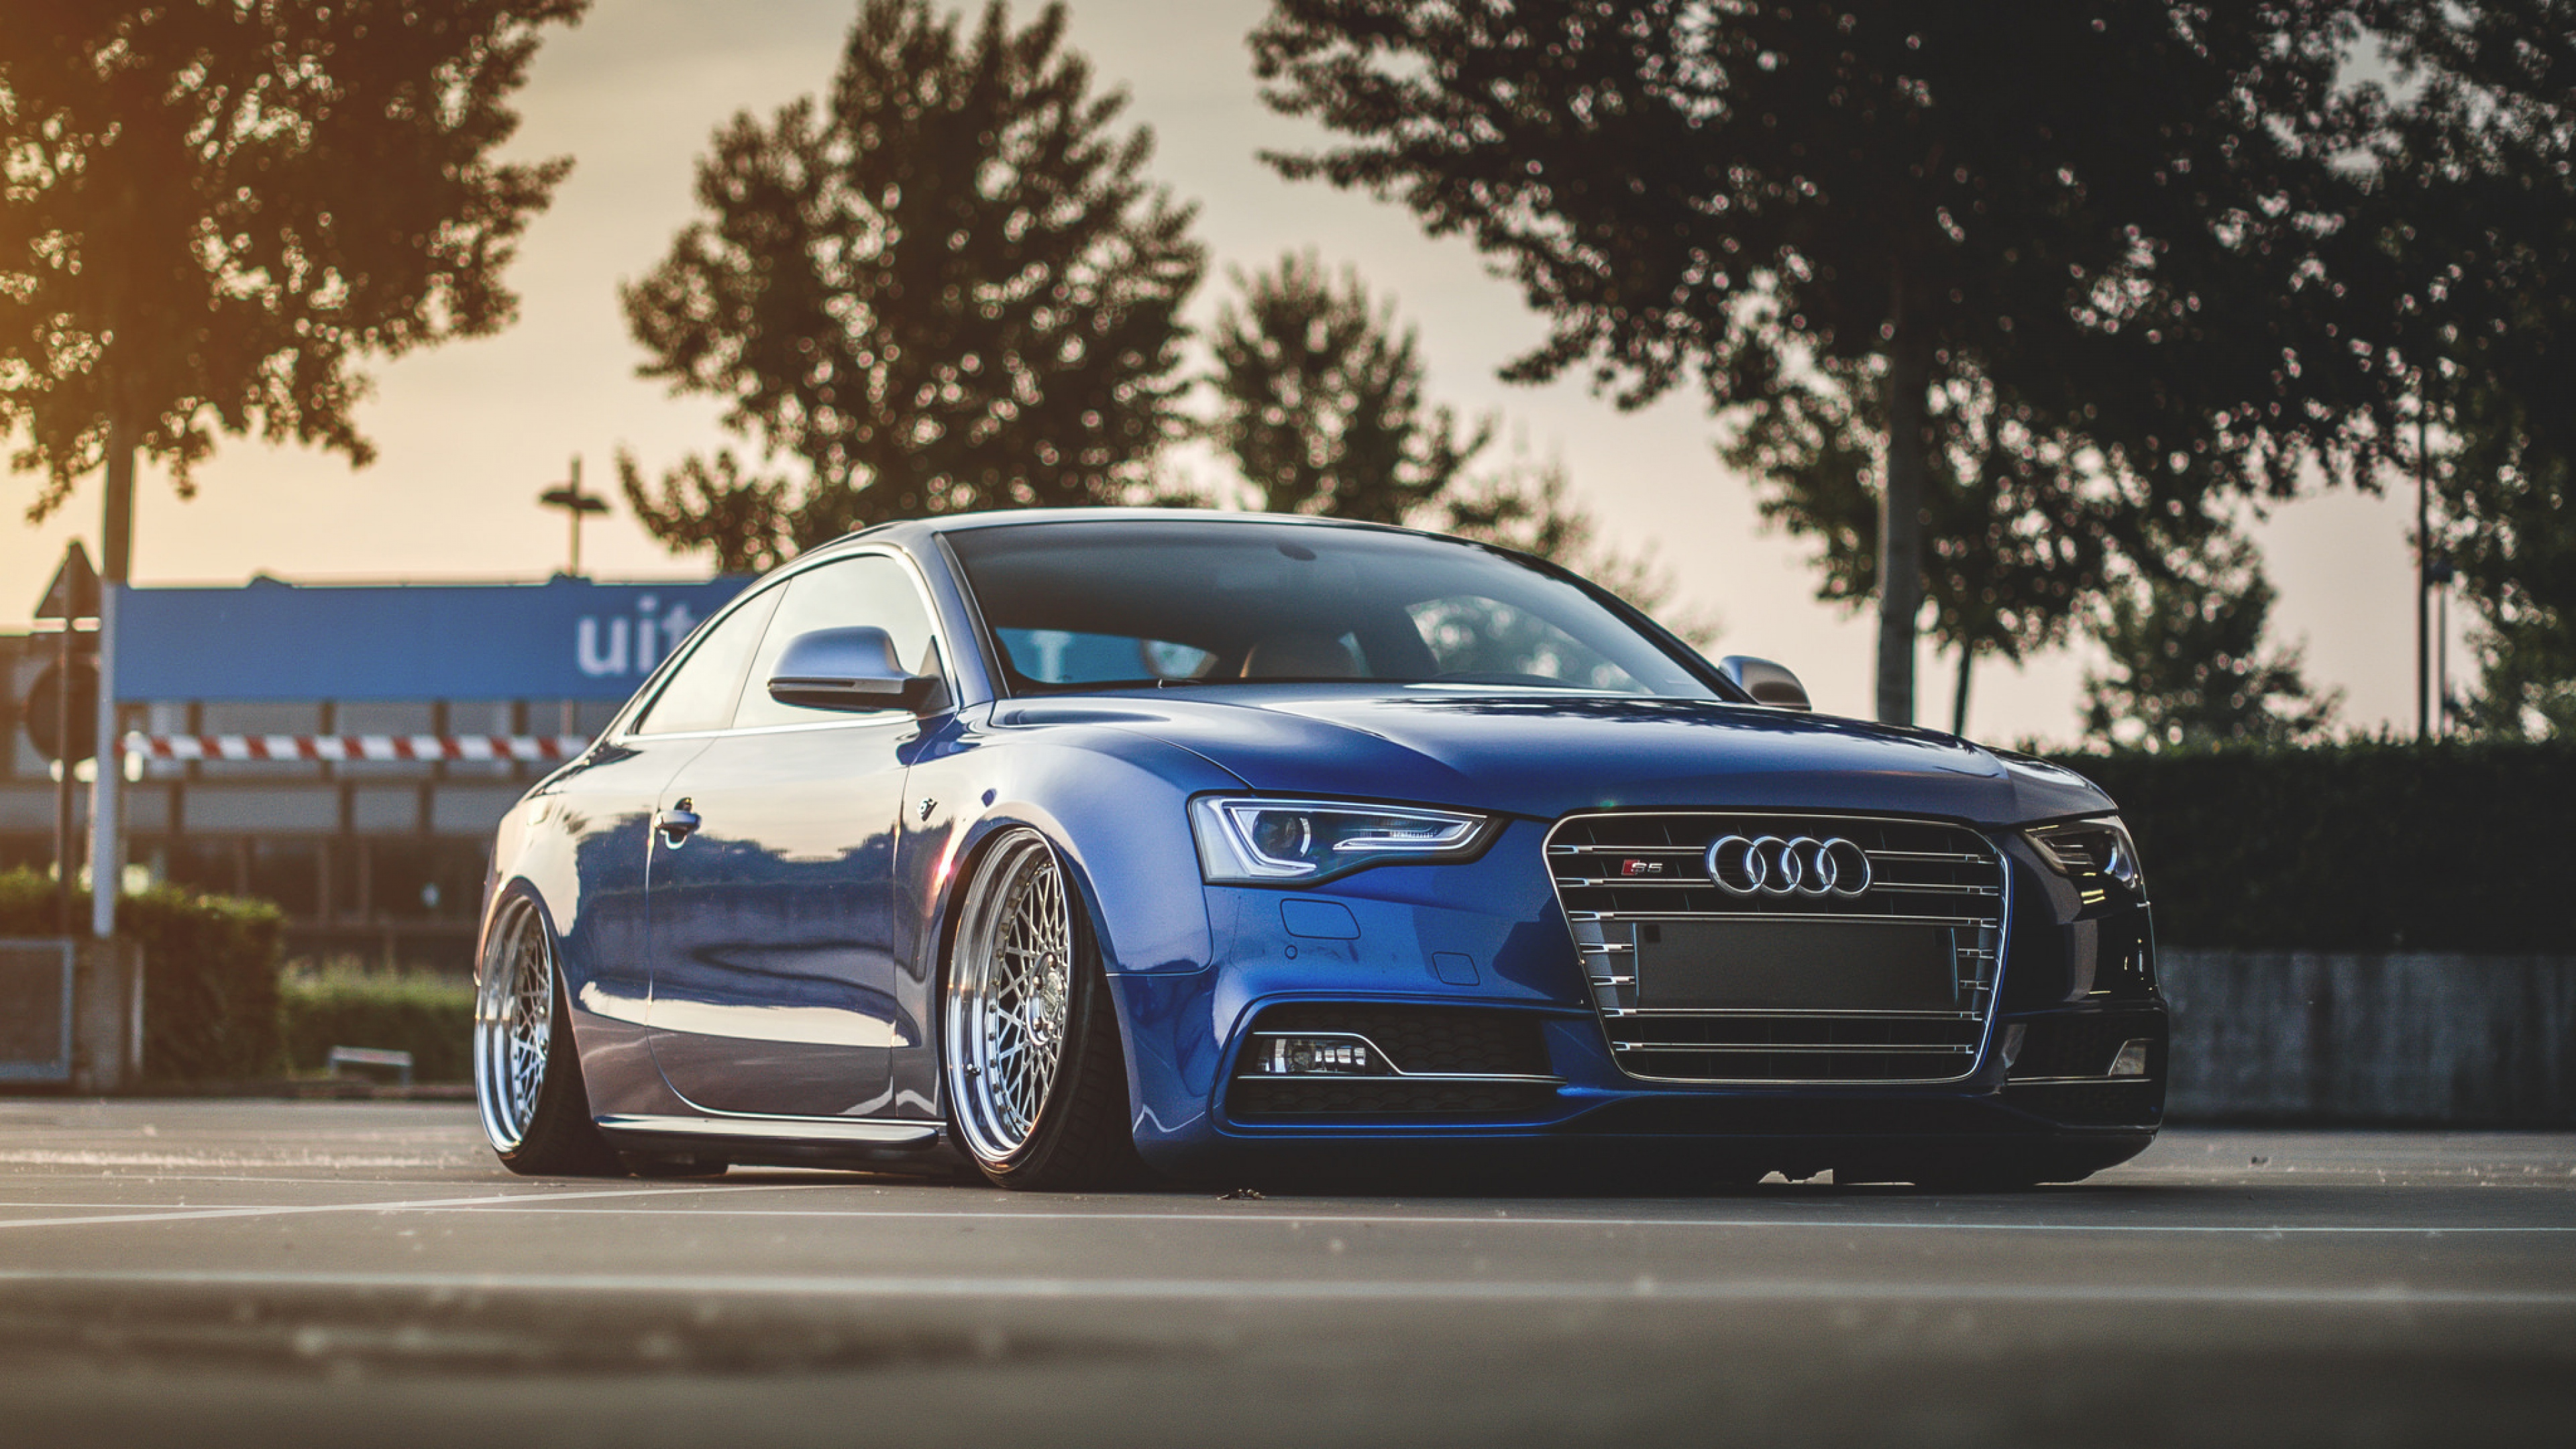 Audi s5 tuning wheels hd cars 4k wallpapers images backgrounds photos and pictures - Car wallpapers for galaxy s5 ...